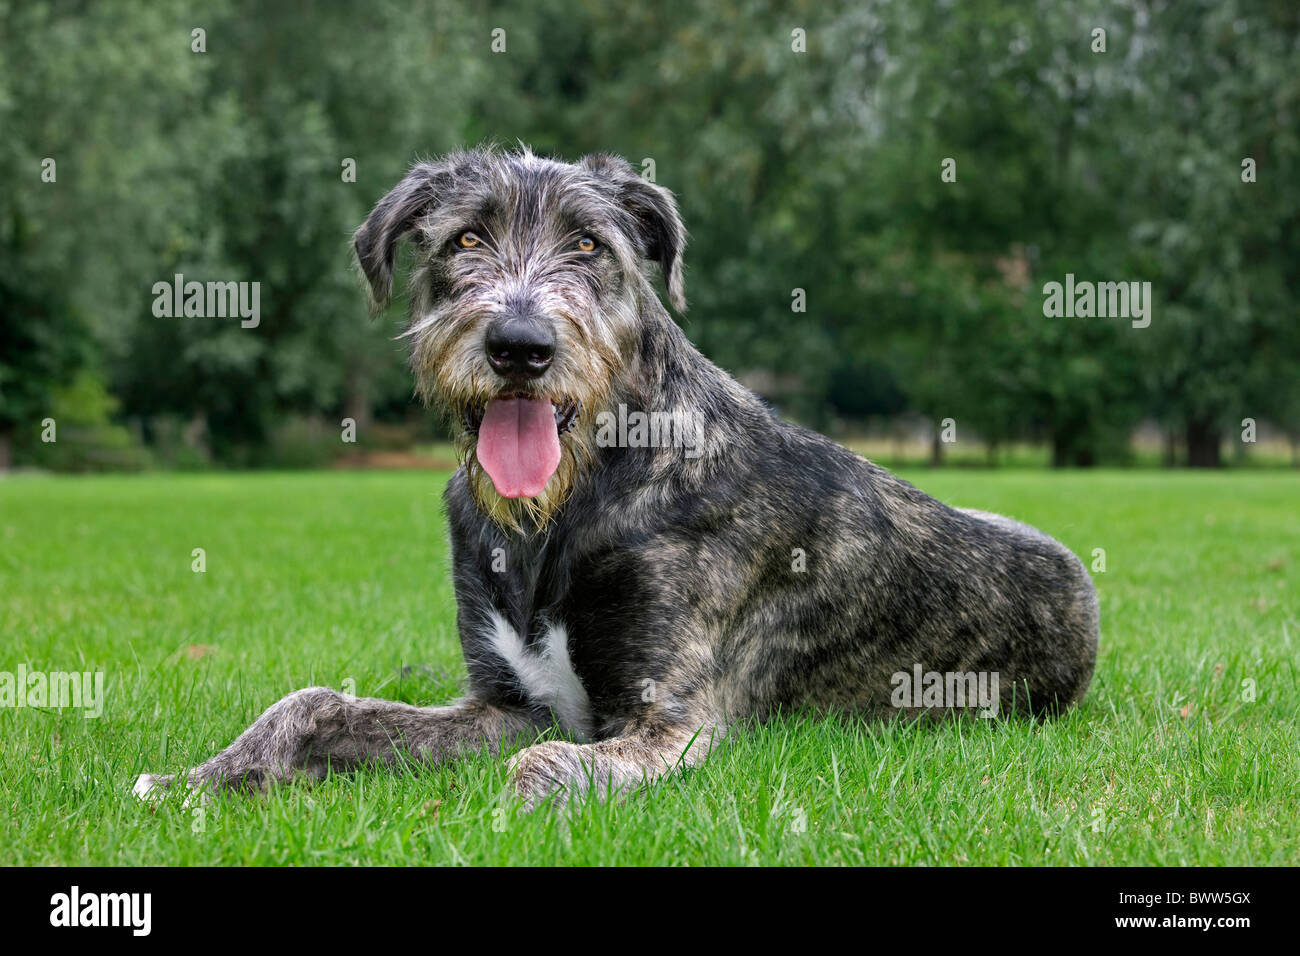 Irish wolfhound (Canis lupus familiaris) panting on lawn in garden - Stock Image